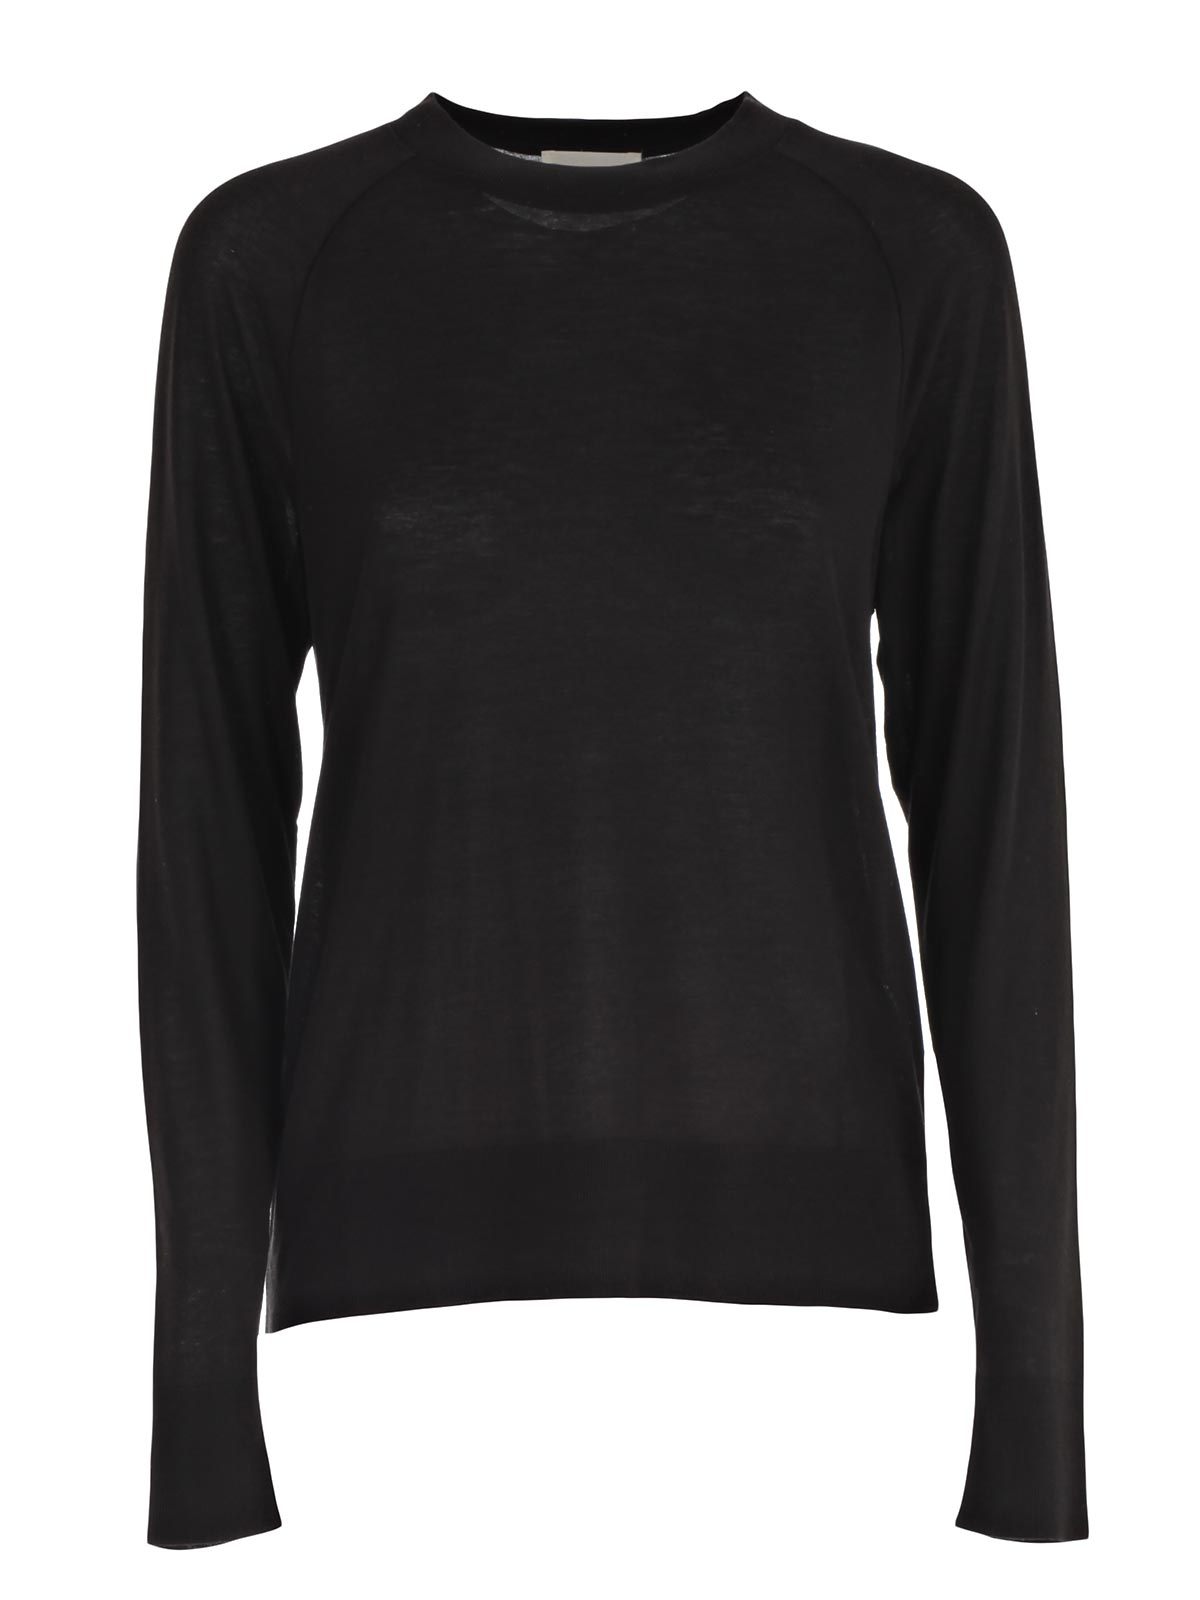 Picture of DKNY T-SHIRT